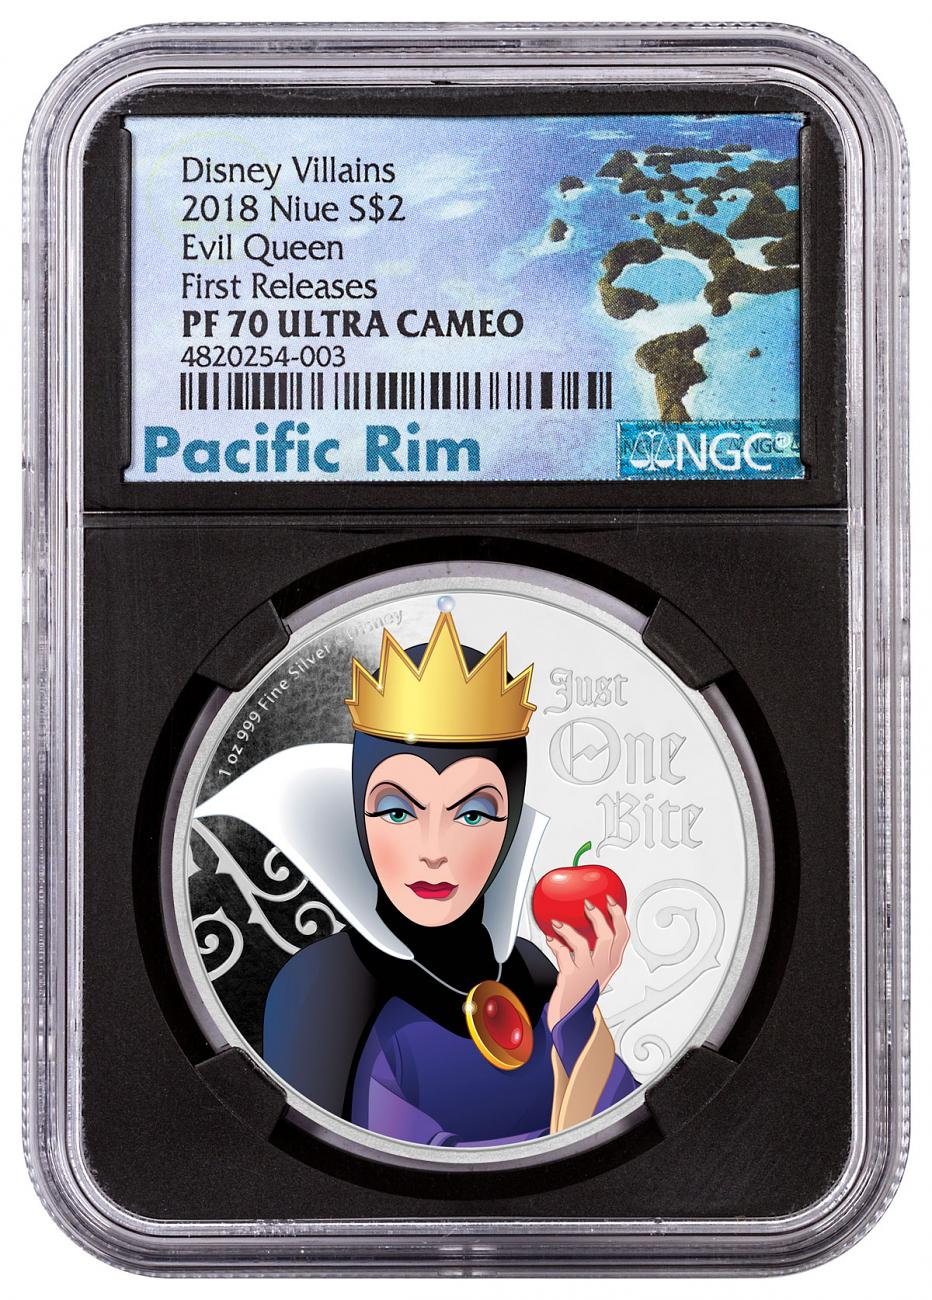 2018 Niue Disney Villains - Evil Queen 1 oz Silver Colorized Proof $2 Coin NGC PF70 UC FR Black Core Holder Exclusive Pacific Rim Label